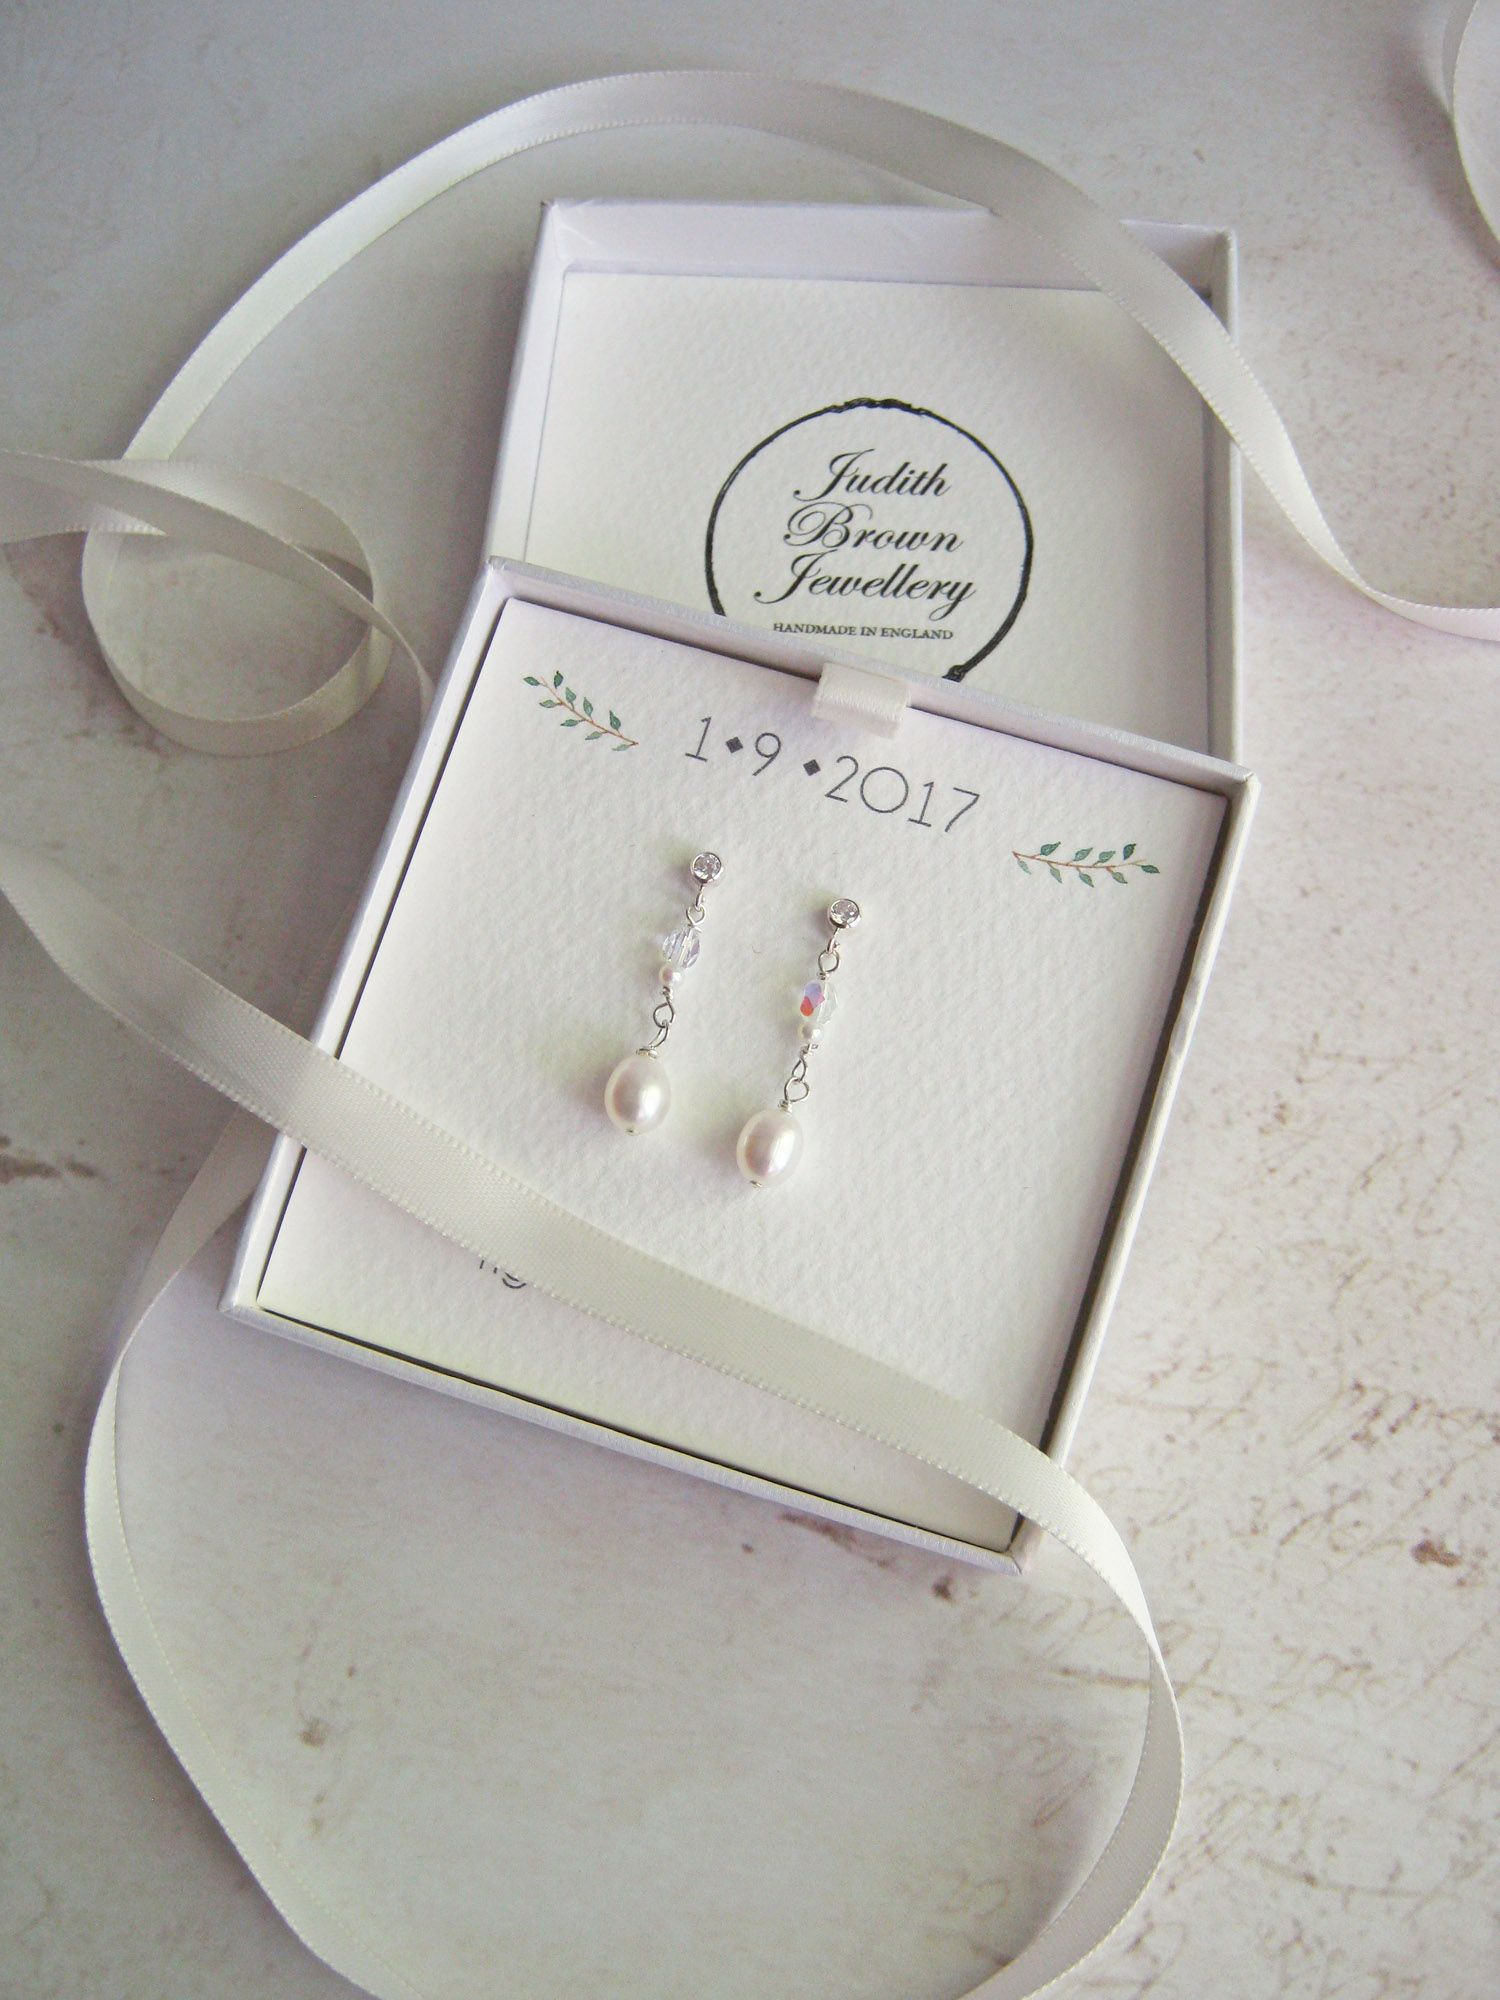 Bespoke jewellery boxes with wedding date